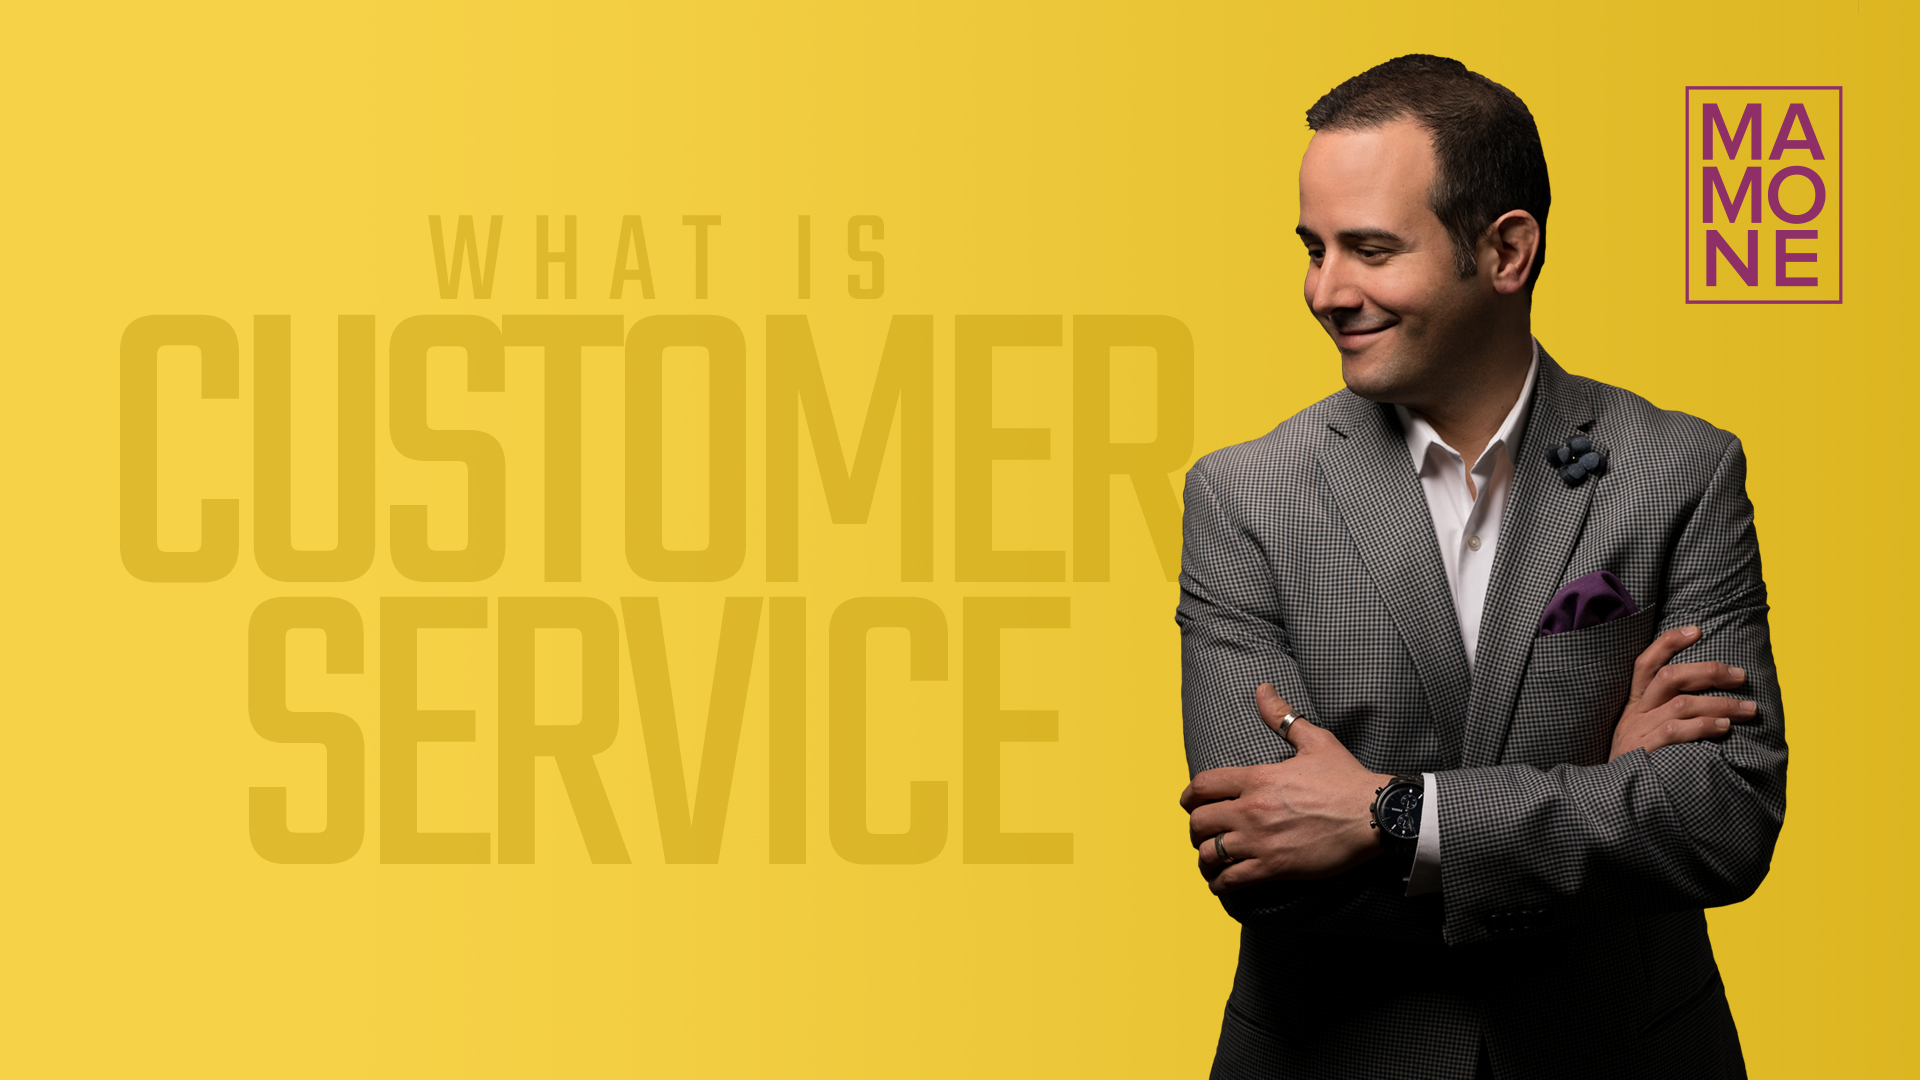 What-is-customer-service-cover